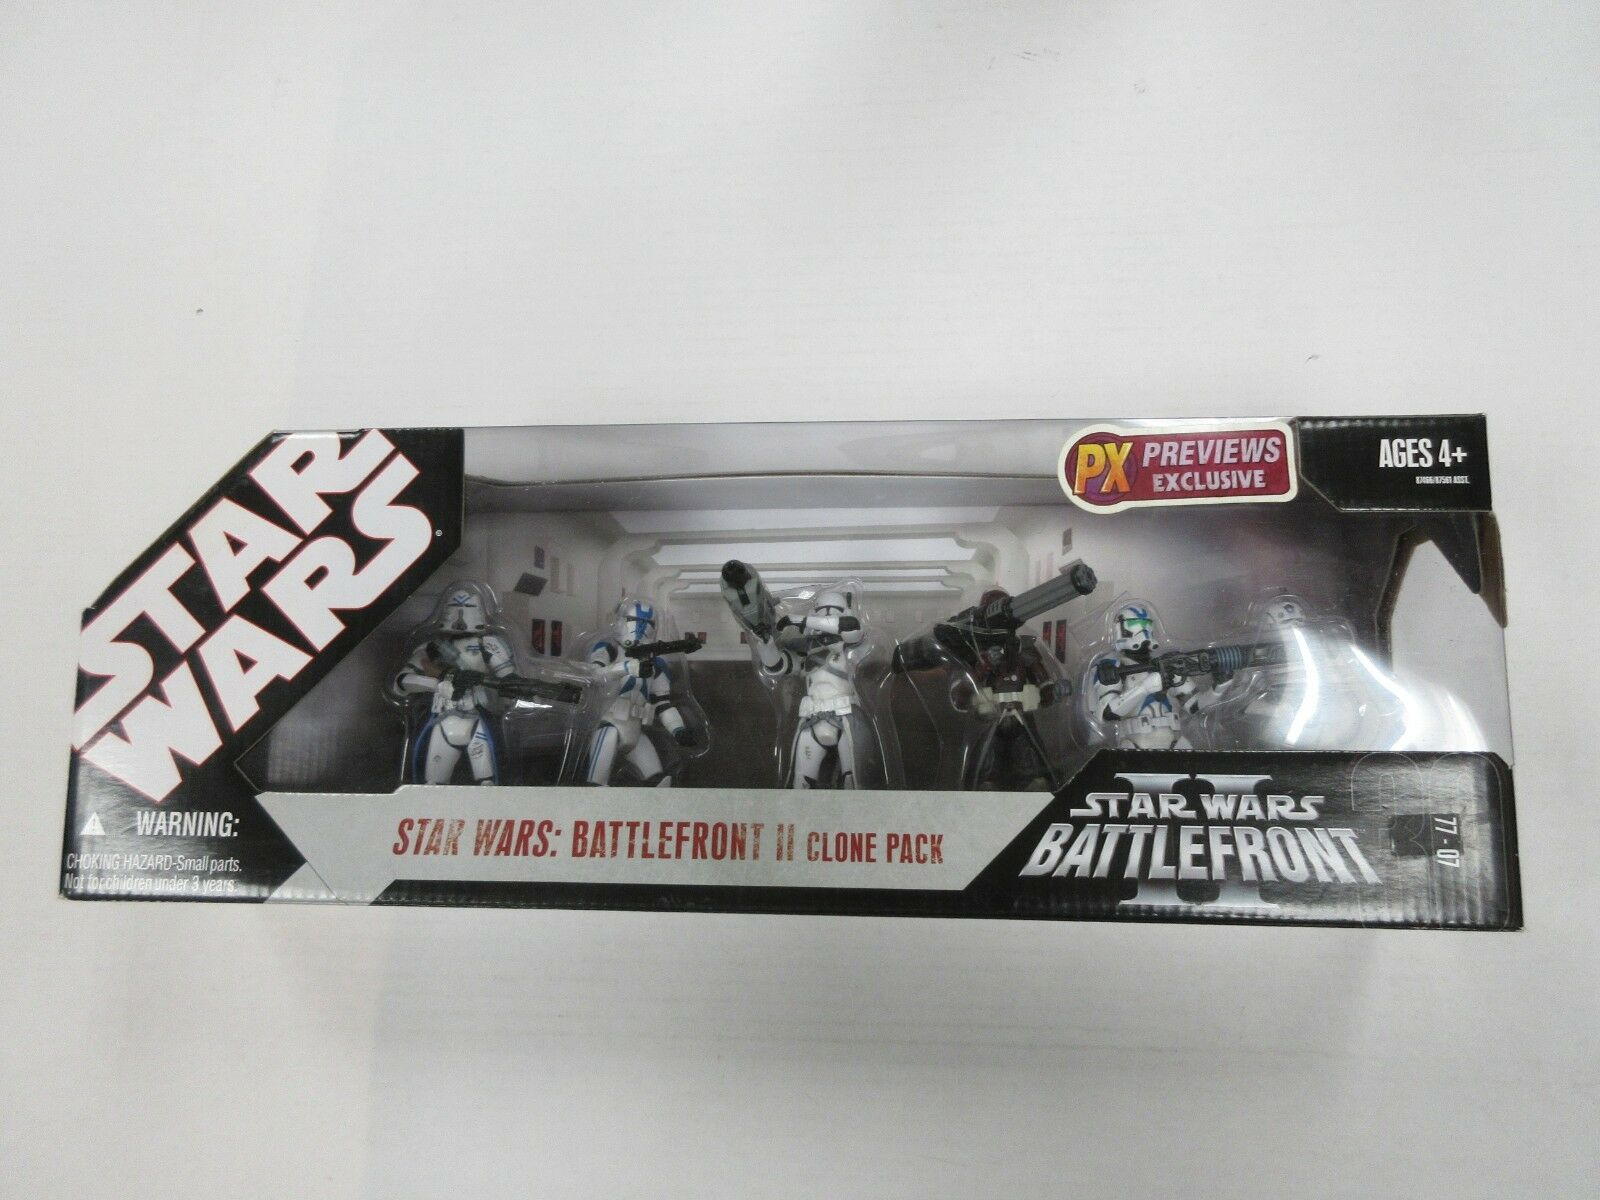 HASBRO STAR WARS PREVIEWS EXCLUSIVE BATTLEFRONT 2 CLONE 6 FIGURE SET NIP SEALED